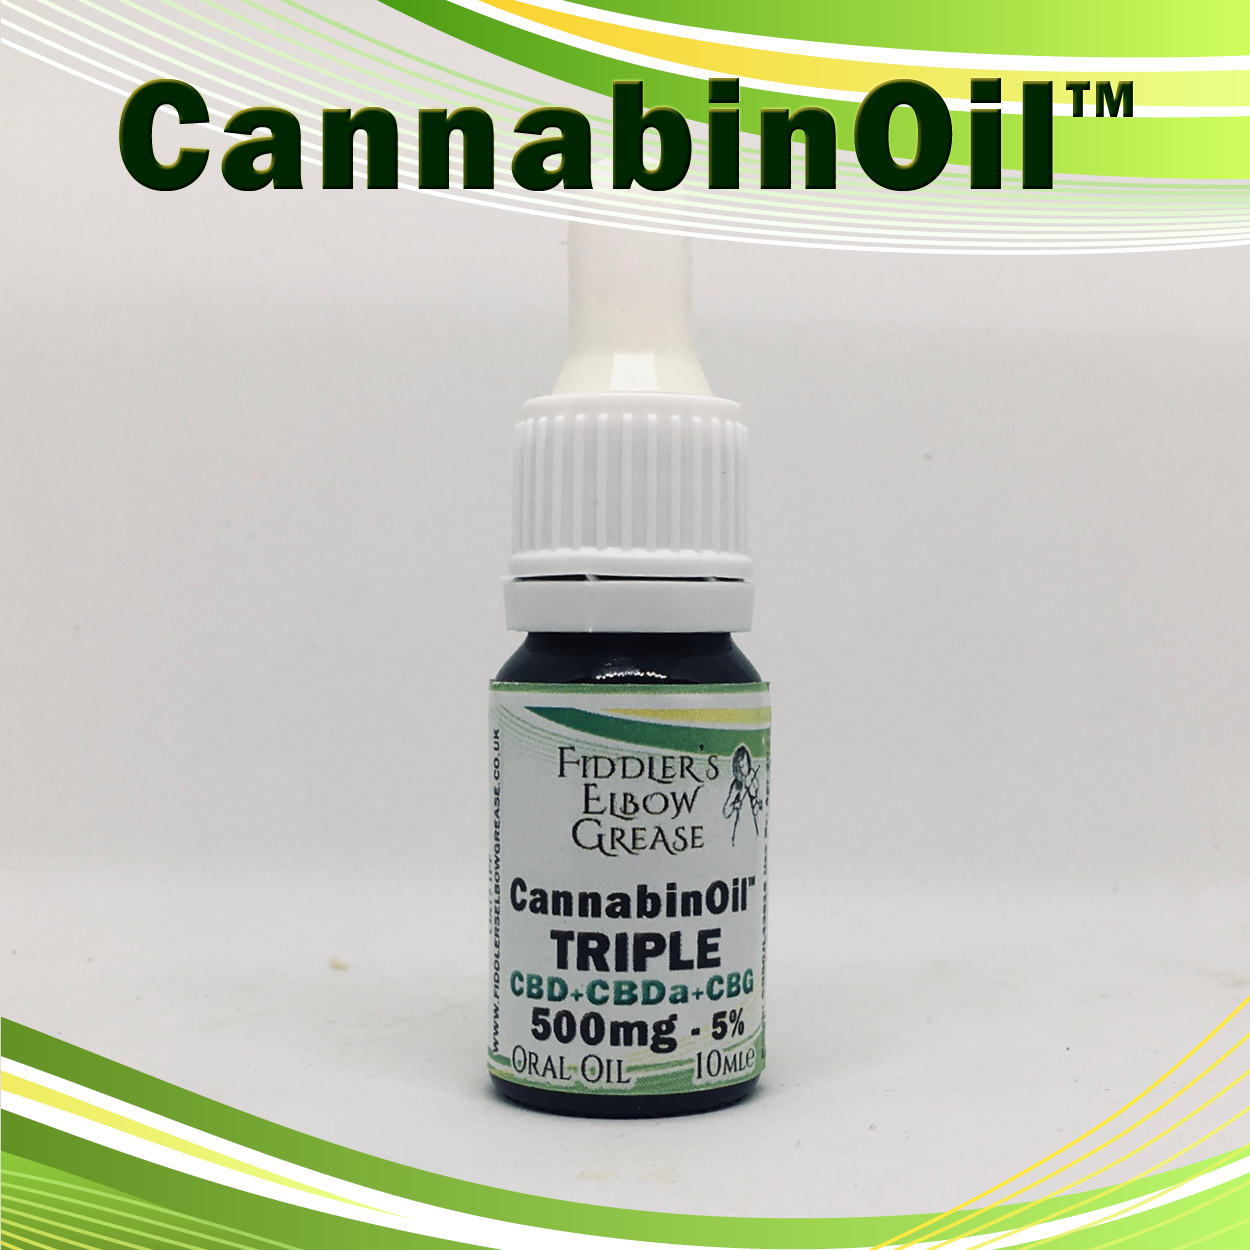 CannabinOil, Hybrid, CBD, CBDa, CBG, Fiddlers Elbow Grease